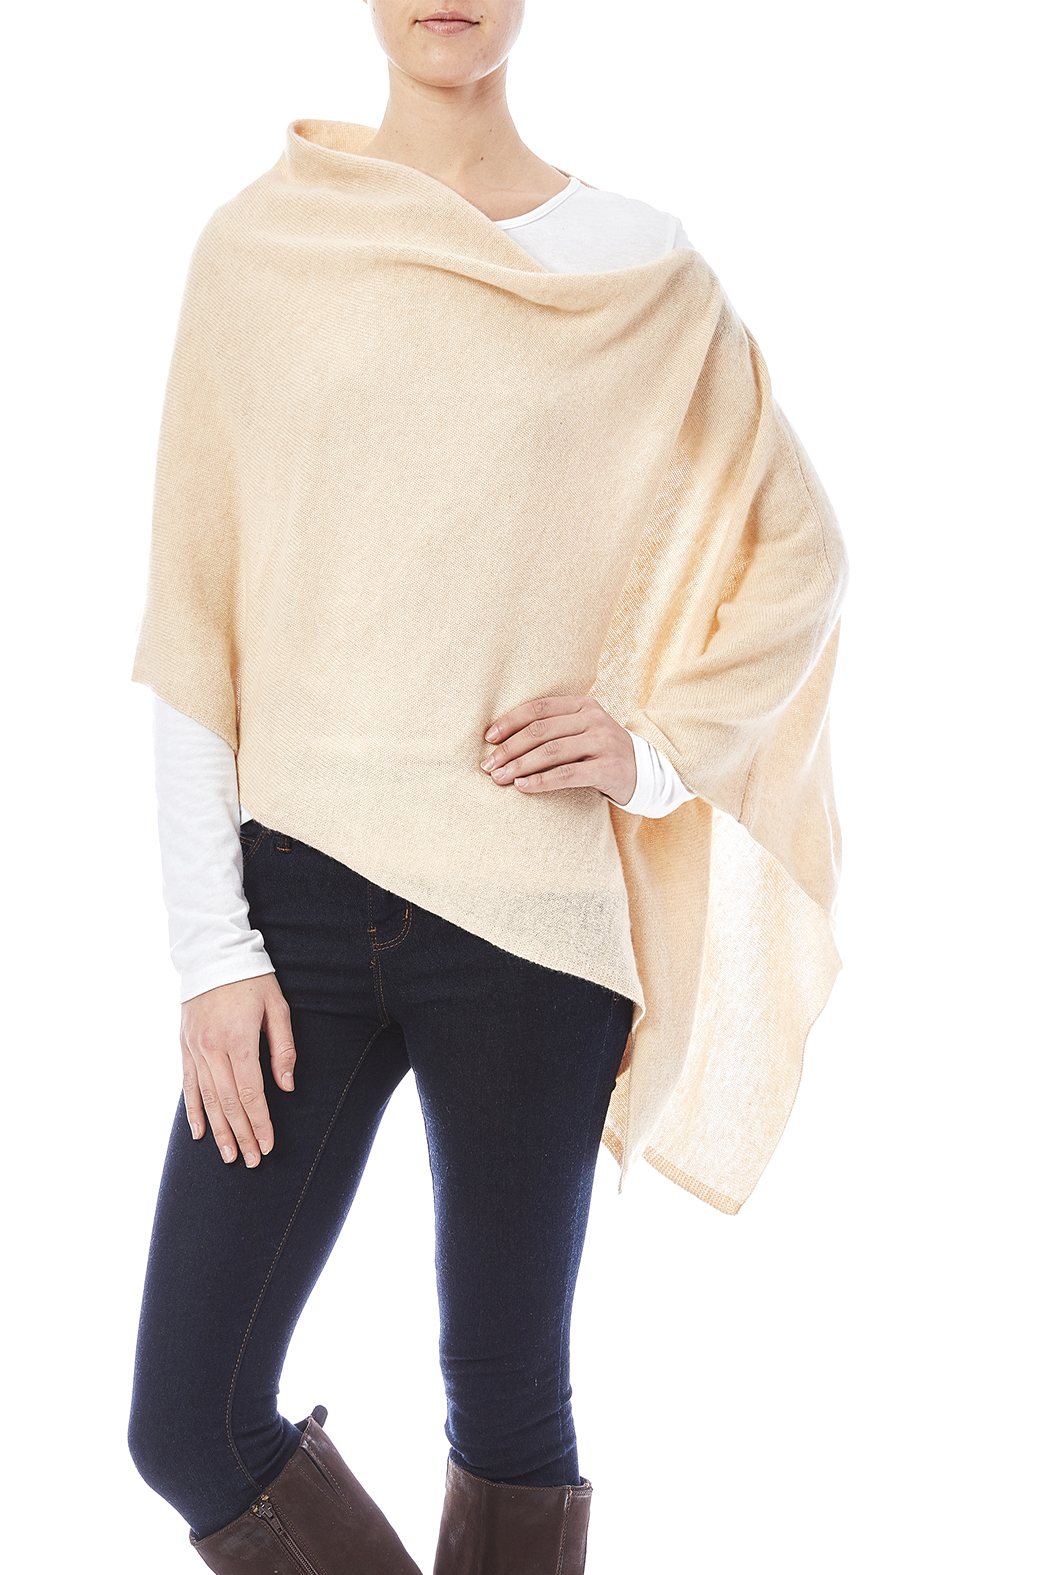 a34275529 Claudia nichole Cashmere Topper from Kentucky by Saratoga ...